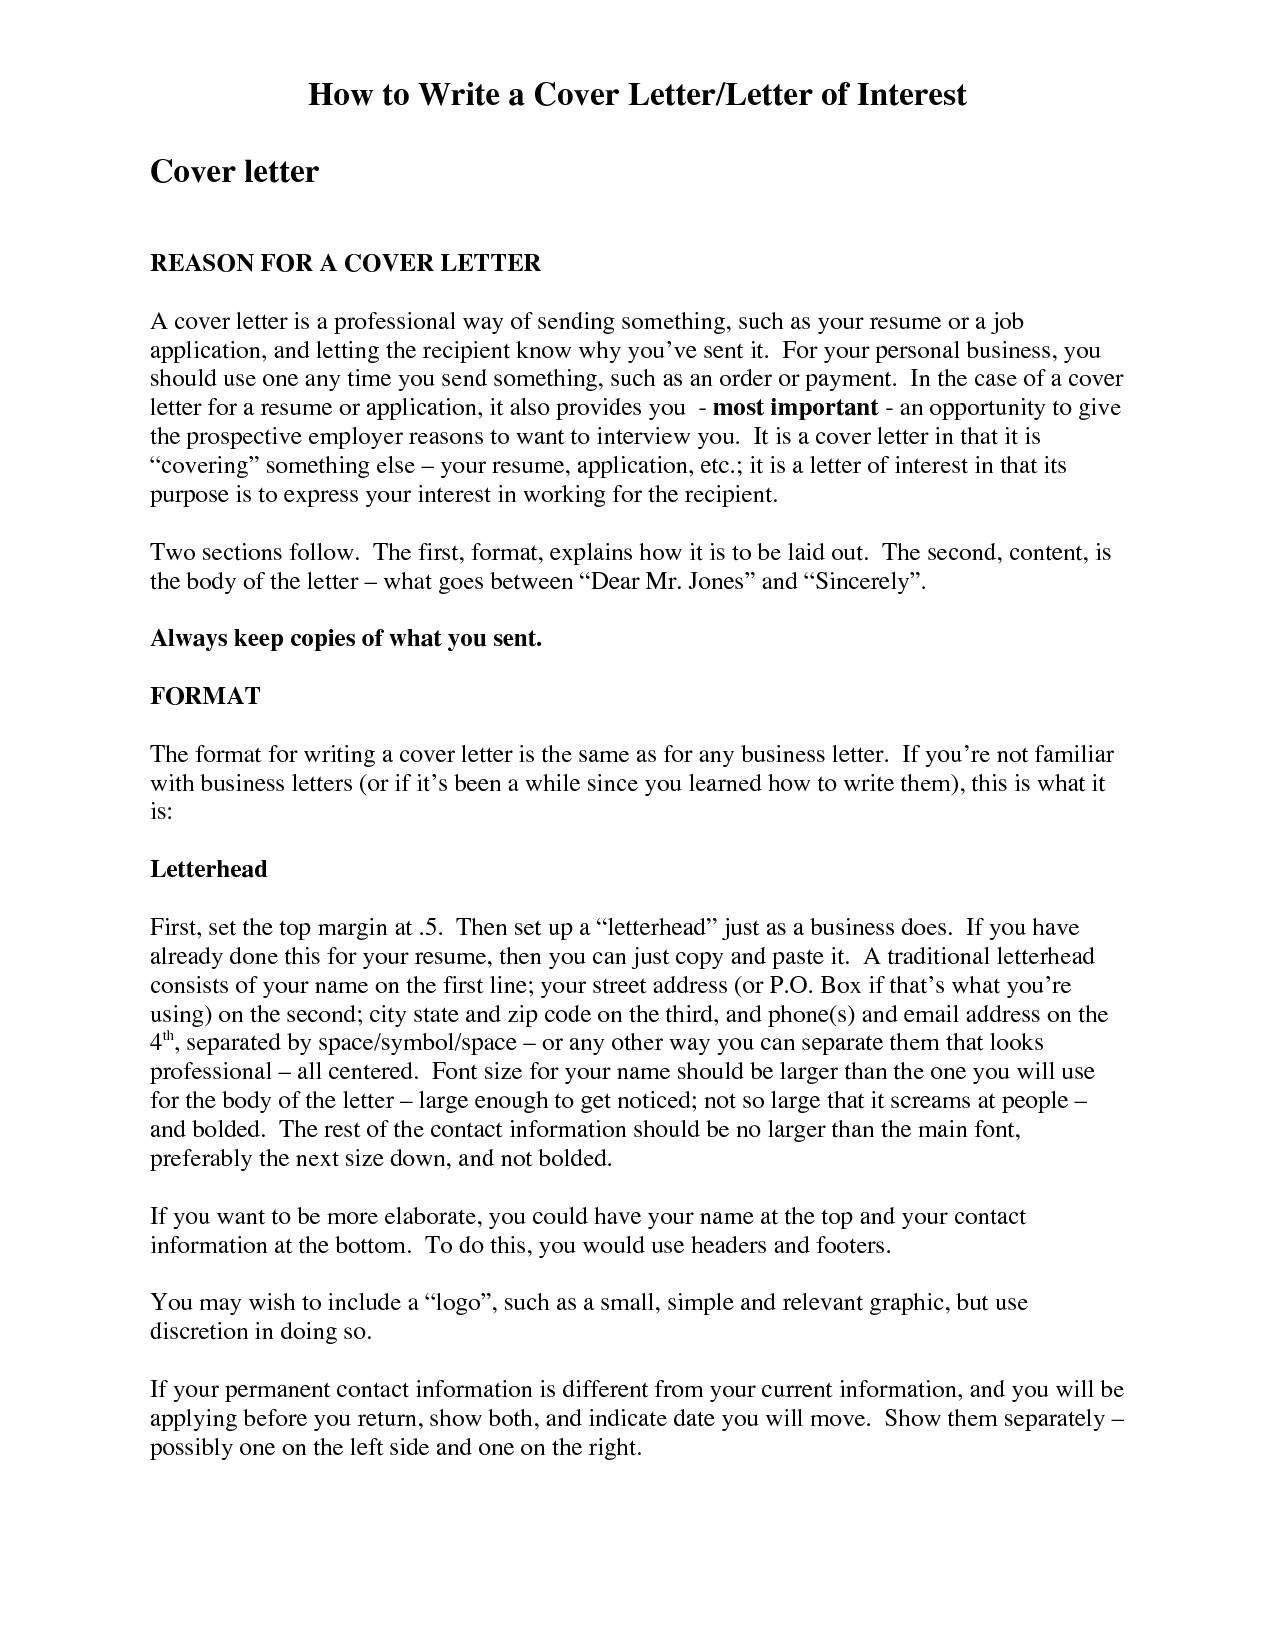 letters of interest examples for a job